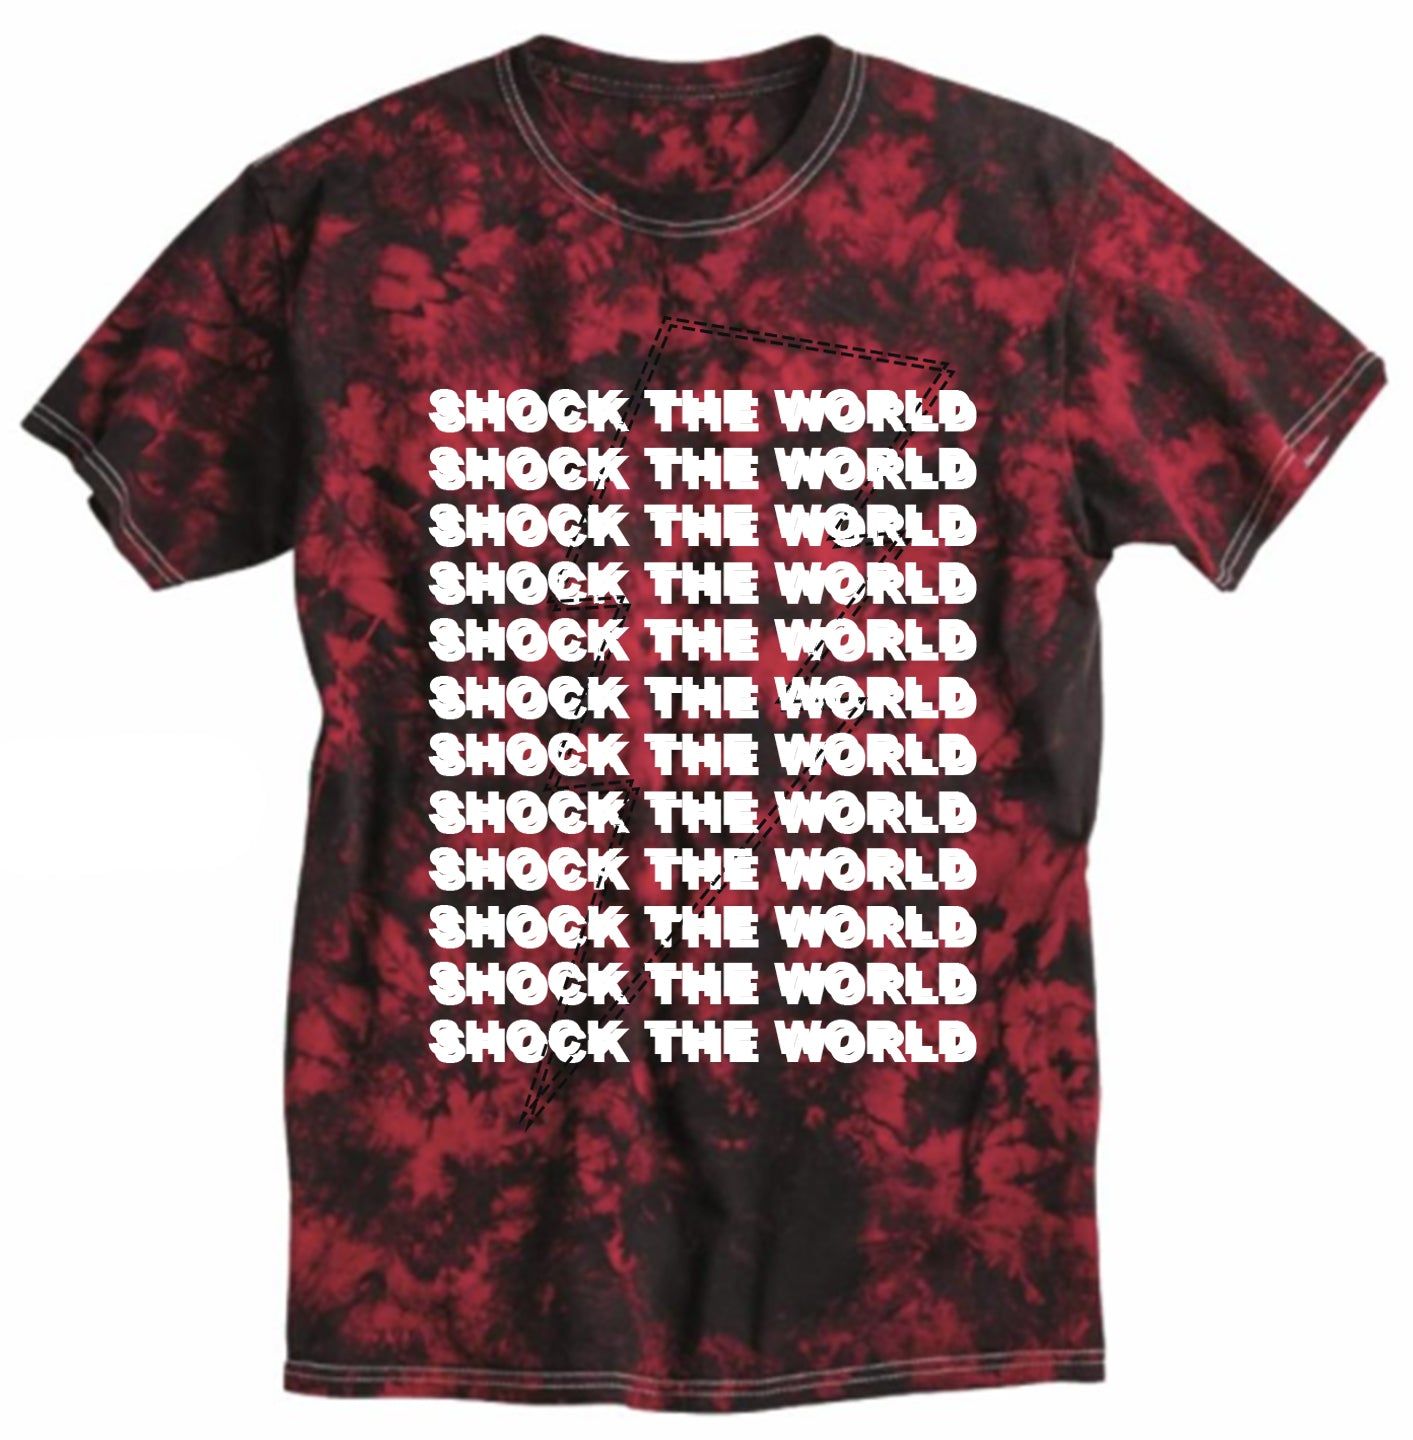 Shock The World - Red Tie Dye